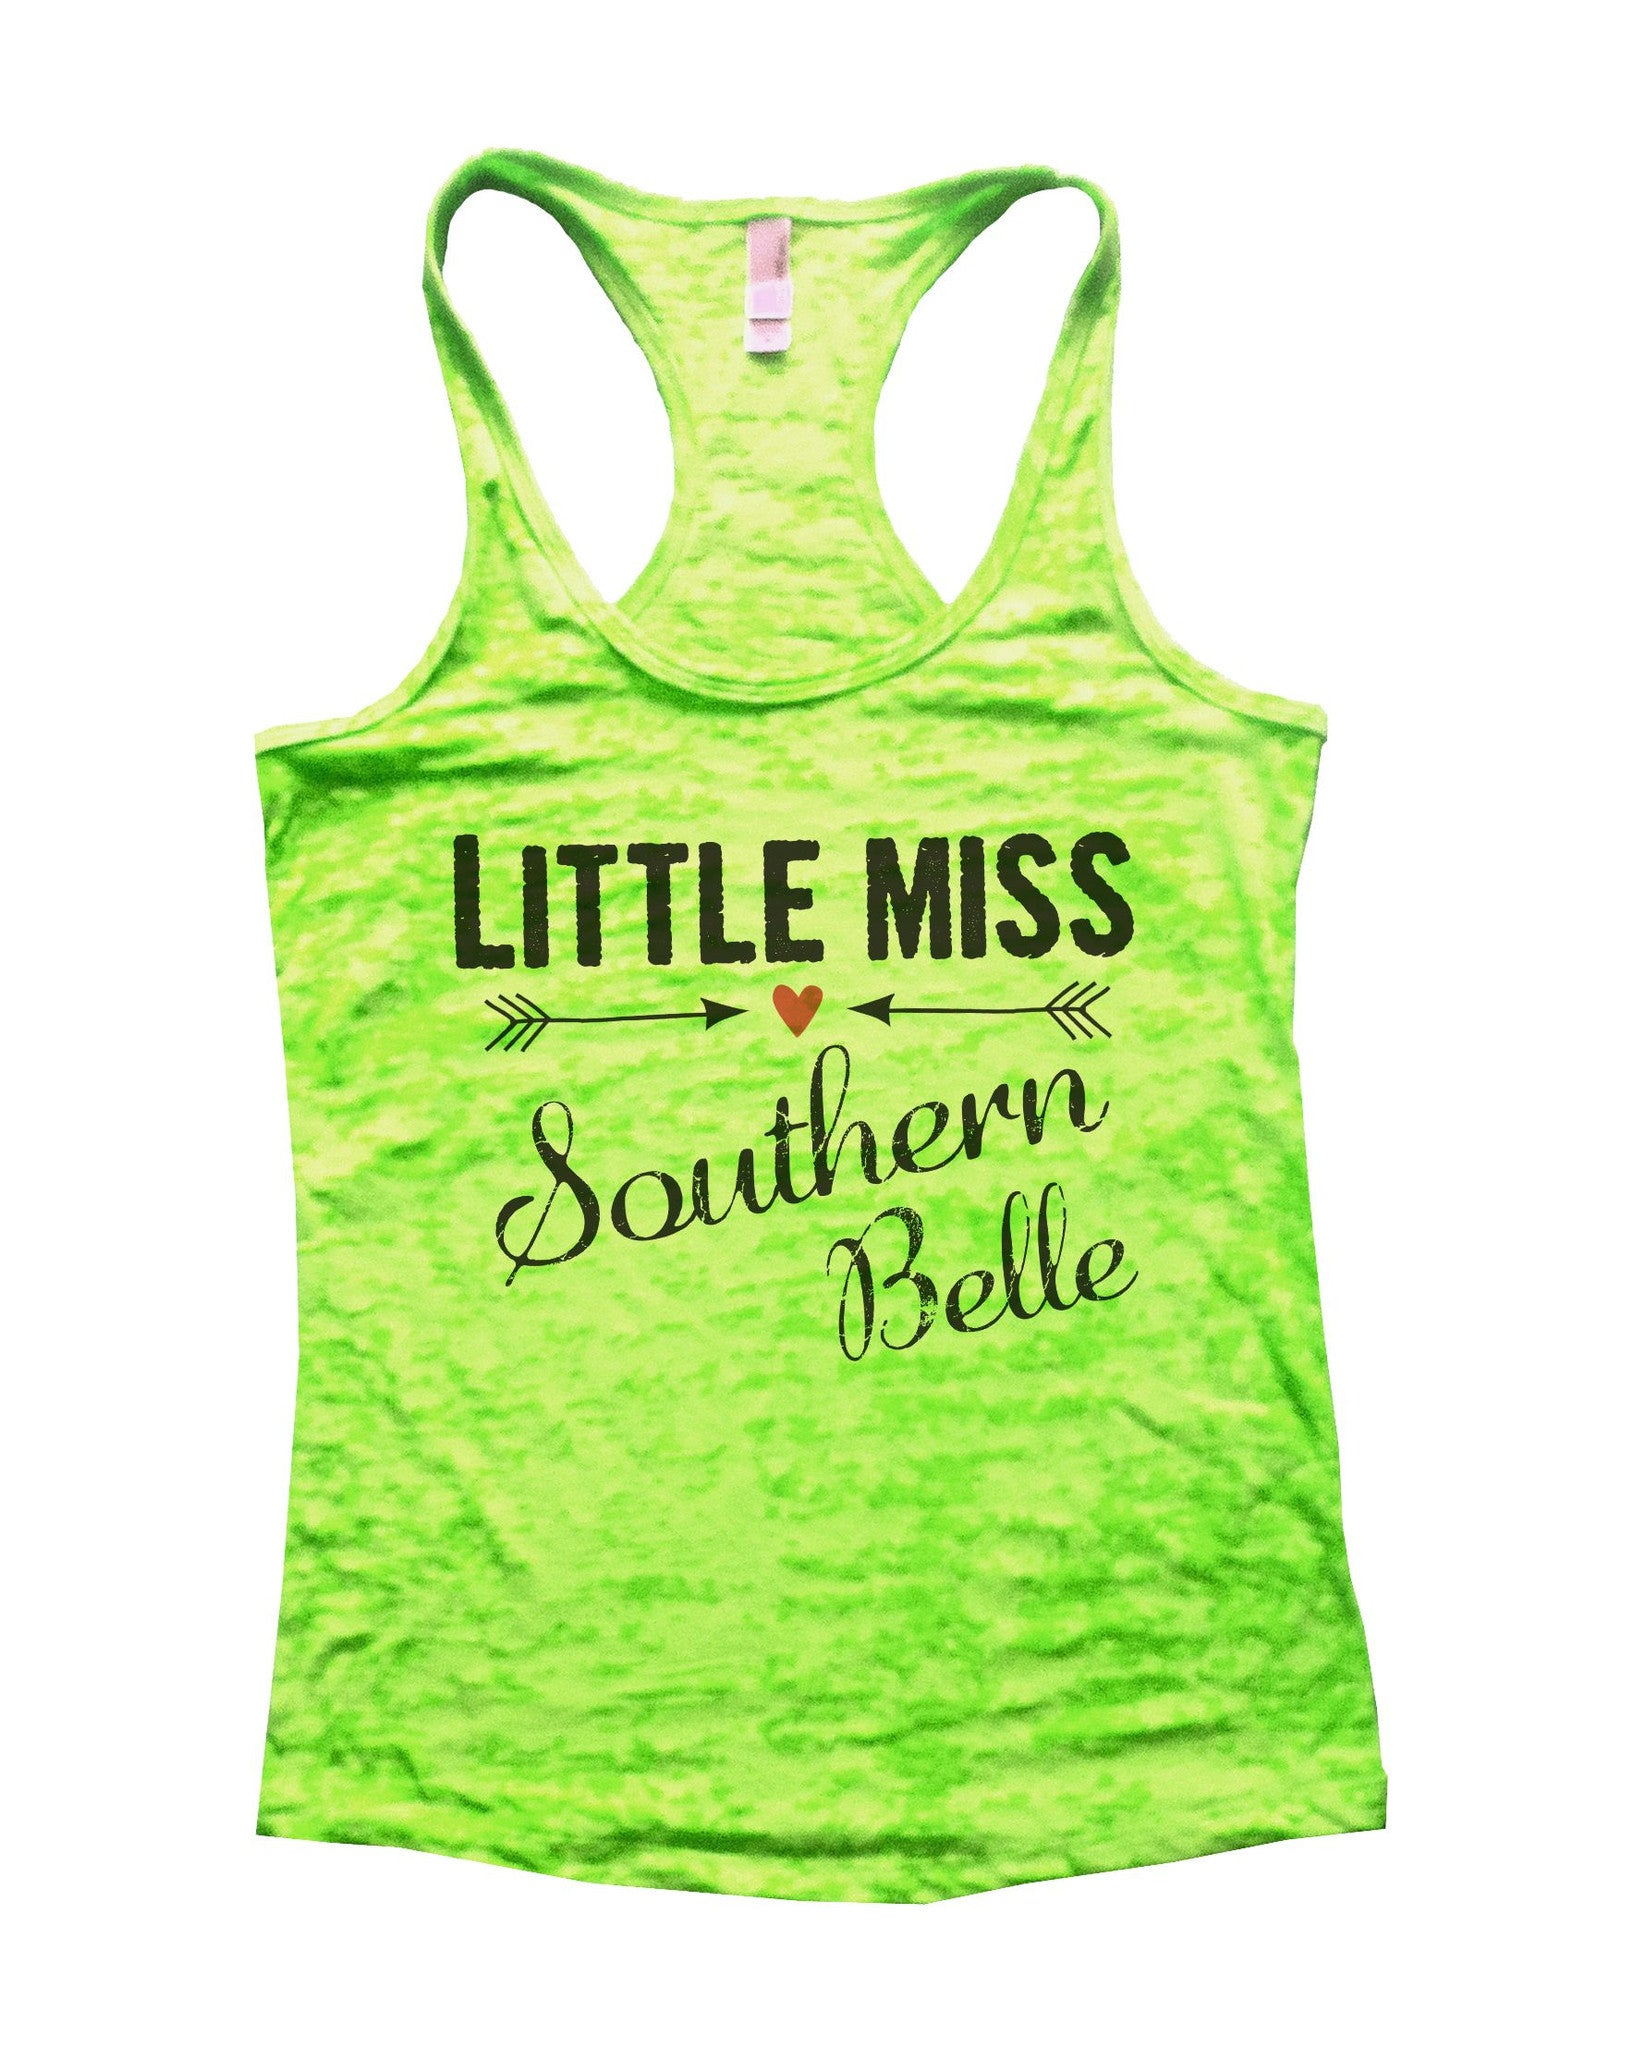 Little Miss Southern Belle Burnout Tank Top By BurnoutTankTops.com - 786 - Funny Shirts Tank Tops Burnouts and Triblends  - 2